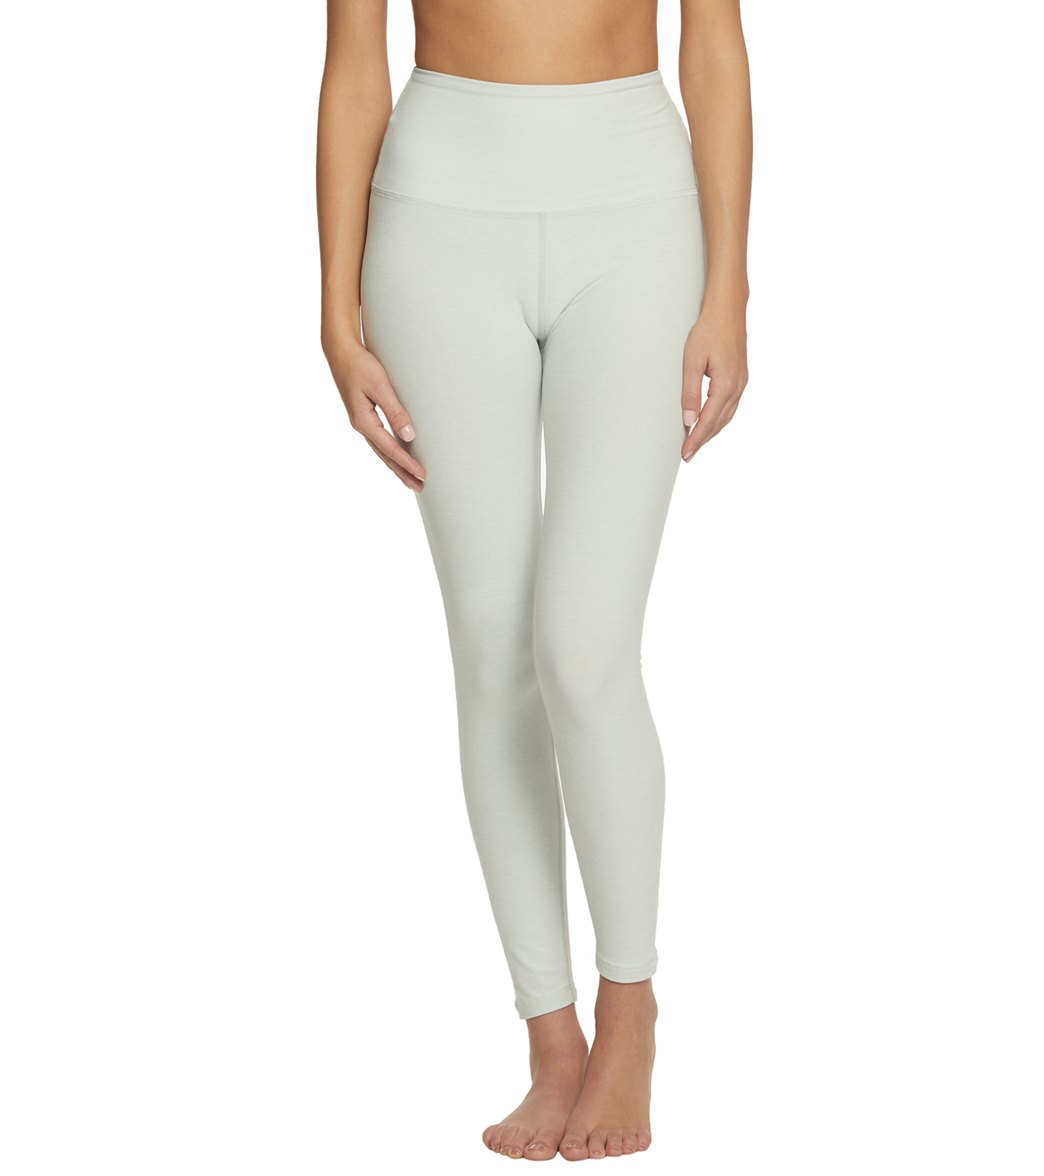 b021a7261ea4d Beyond Yoga Spacedye High Waisted Caught In The Midi 7/8 Yoga Leggings